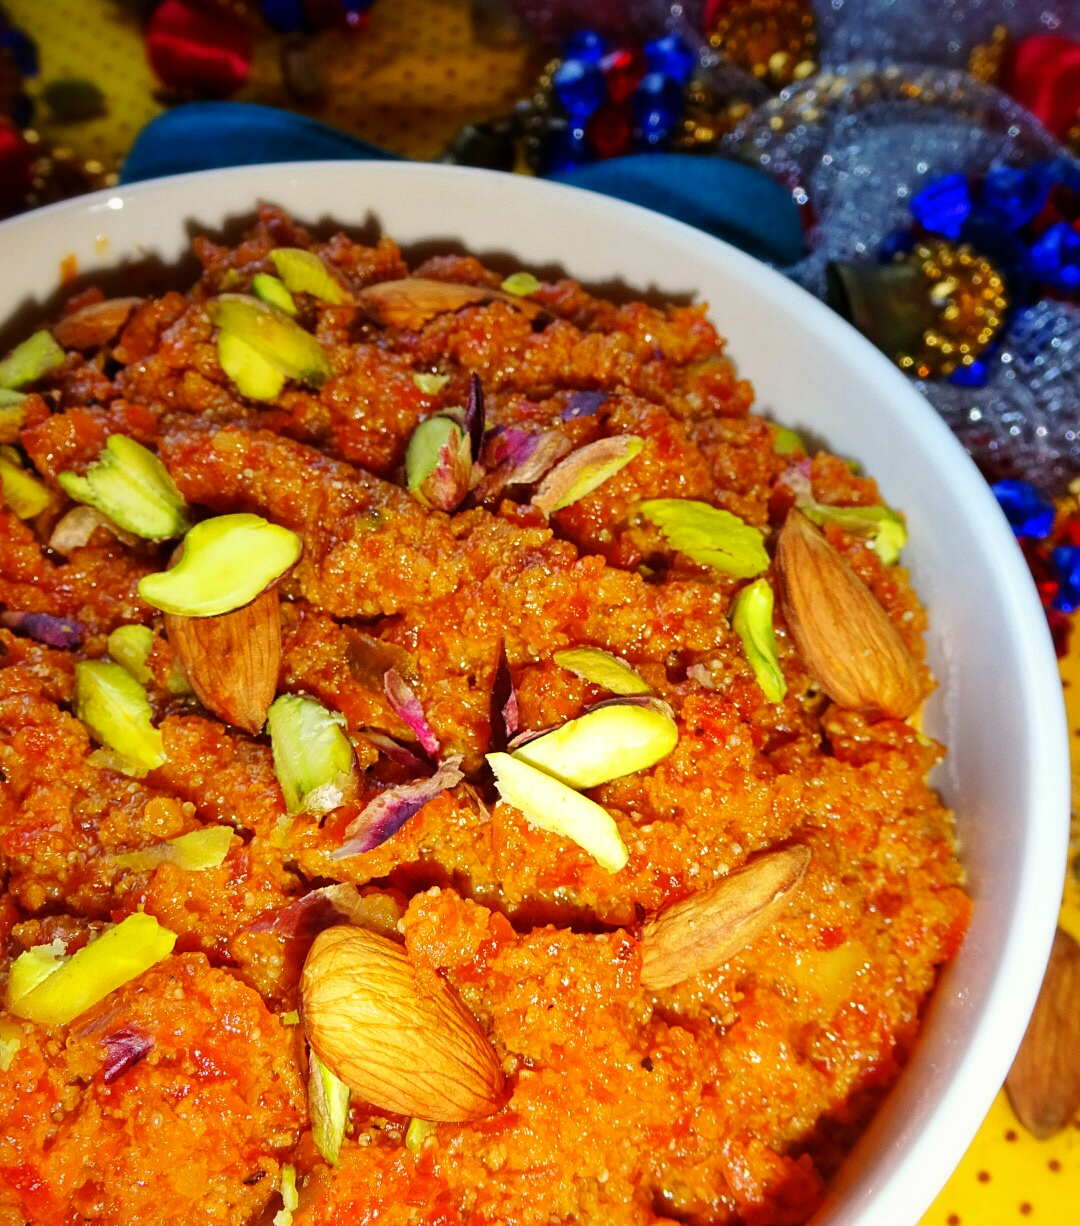 Veg indian good food recipes gajar ka halwa how to prepare gajar ka halwa carrot pudding recipe gajar ka halwa with khoya recipe gajar halwa recipe winter special indian sweet dish forumfinder